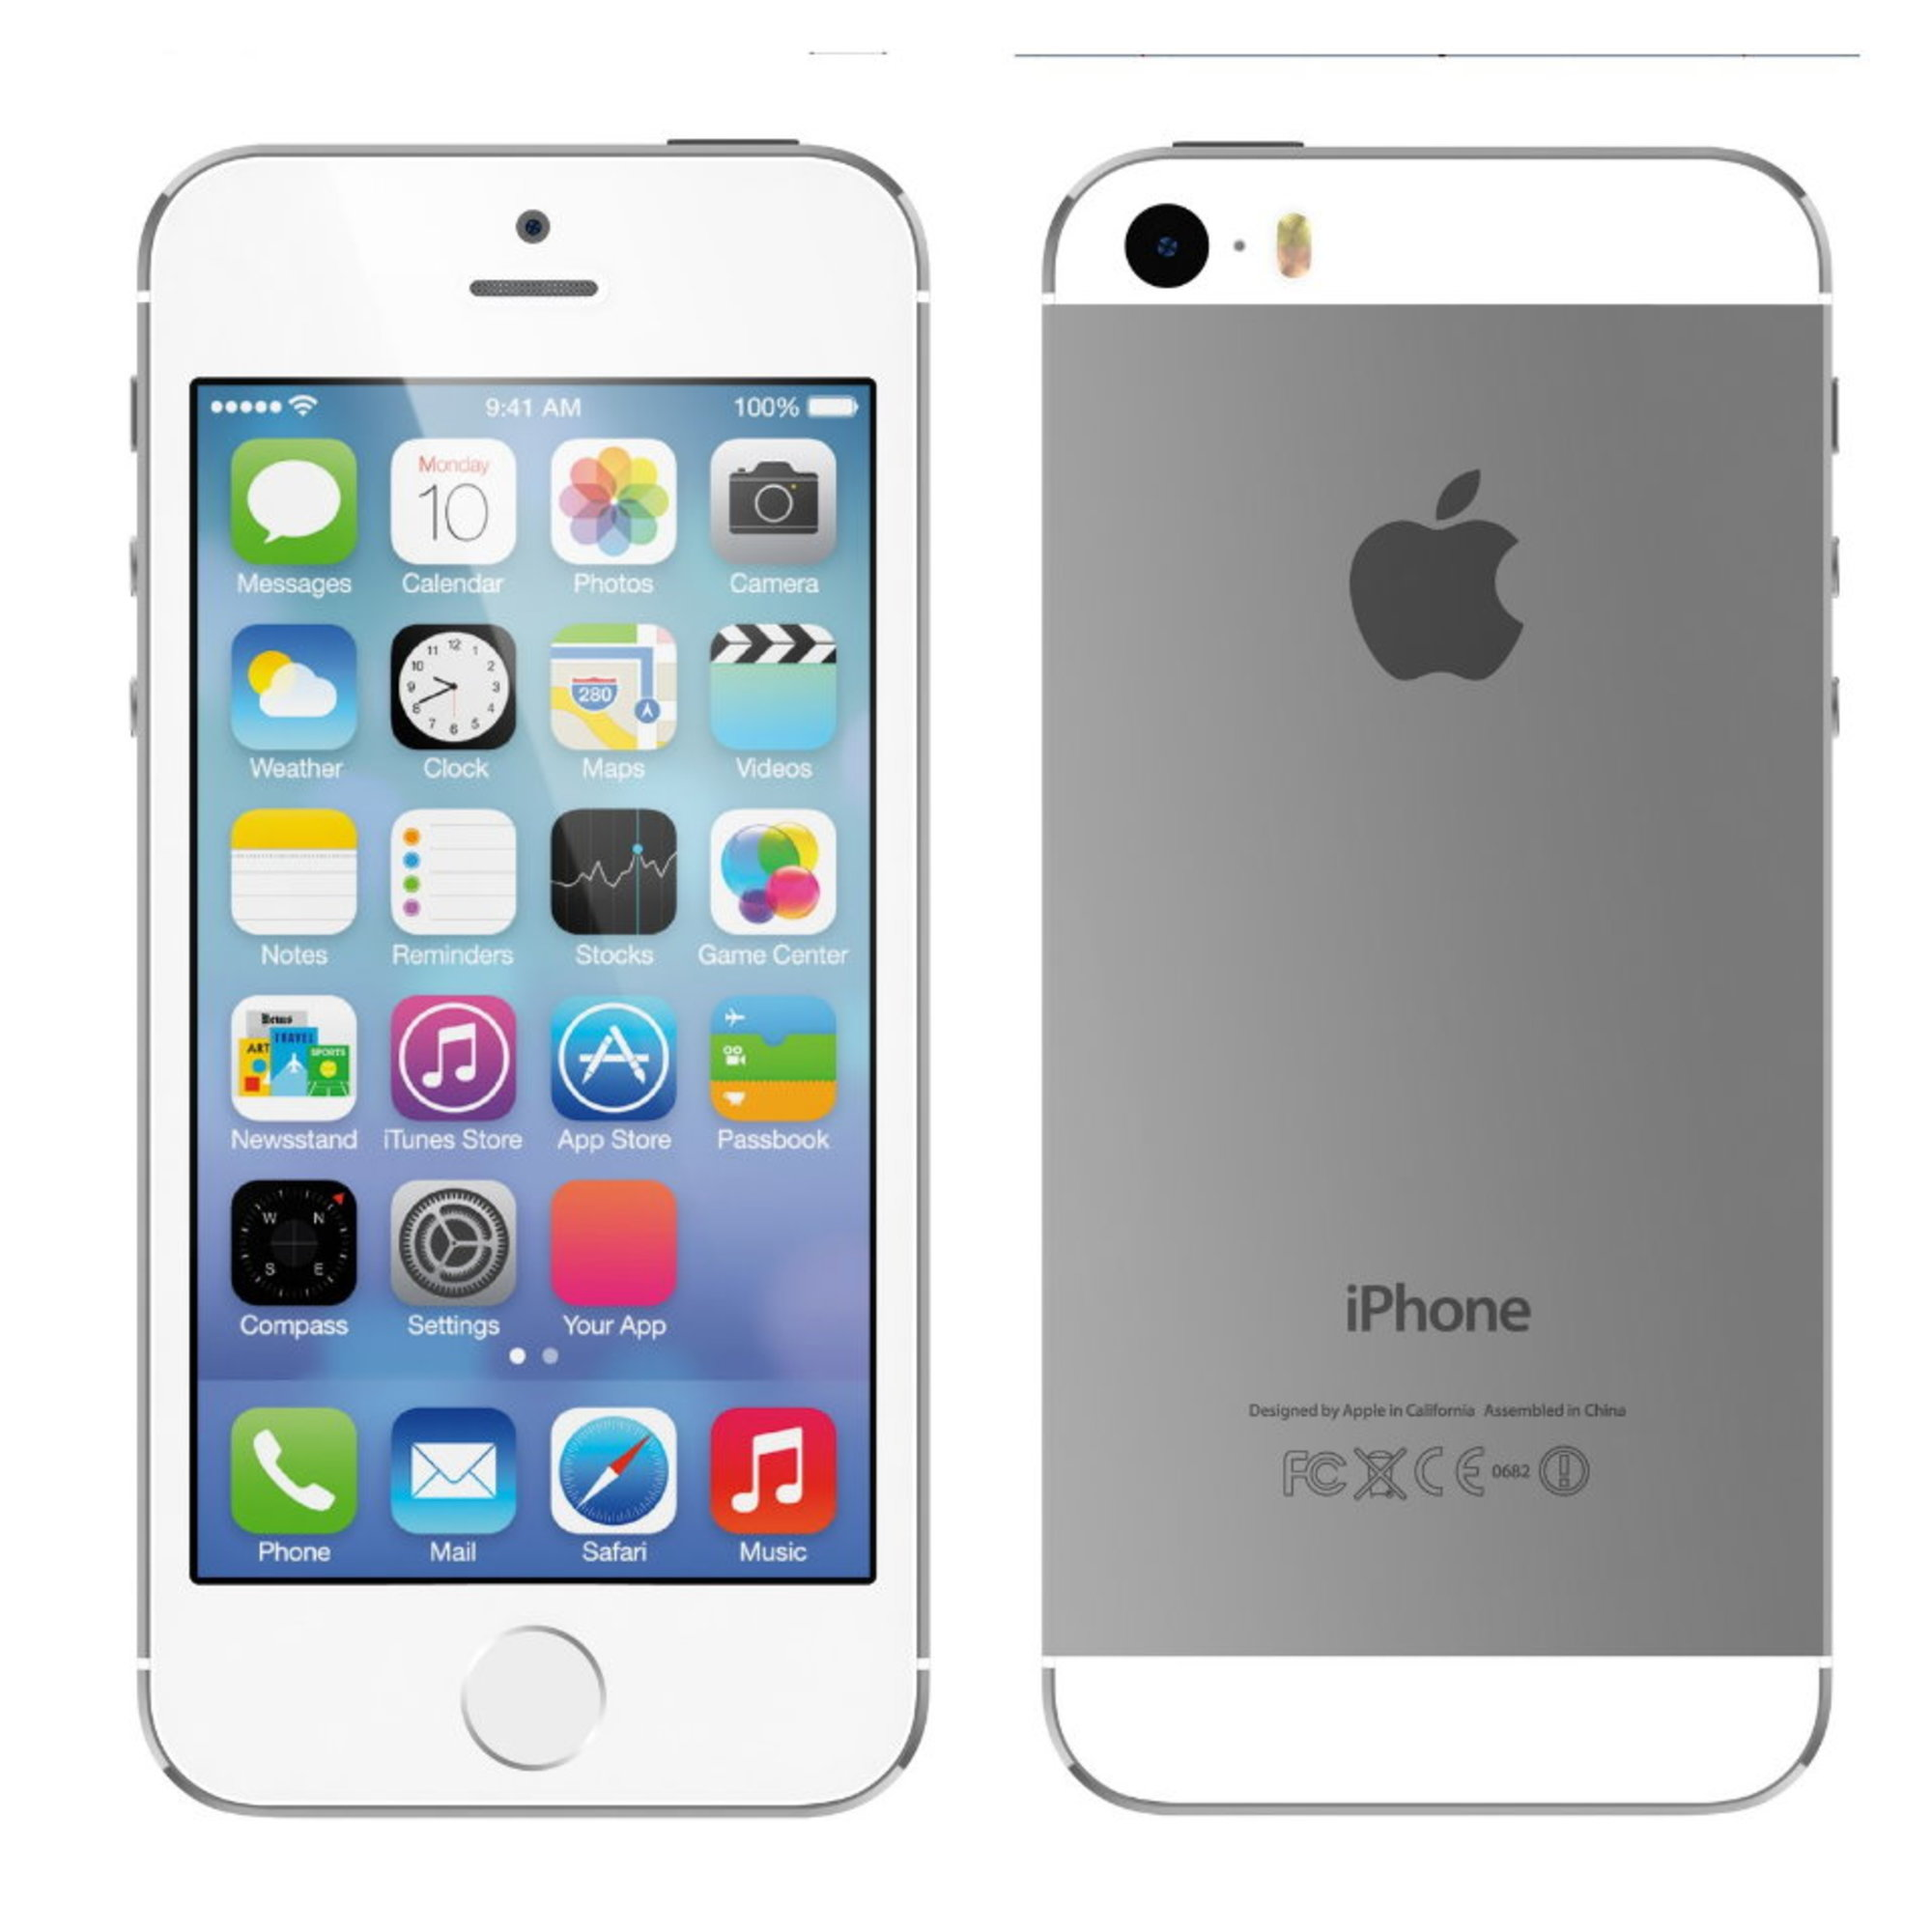 iphone 5 refurbished unlocked apple iphone 5s 16gb unlocked gsm lte dualcore 8mp phone 5576